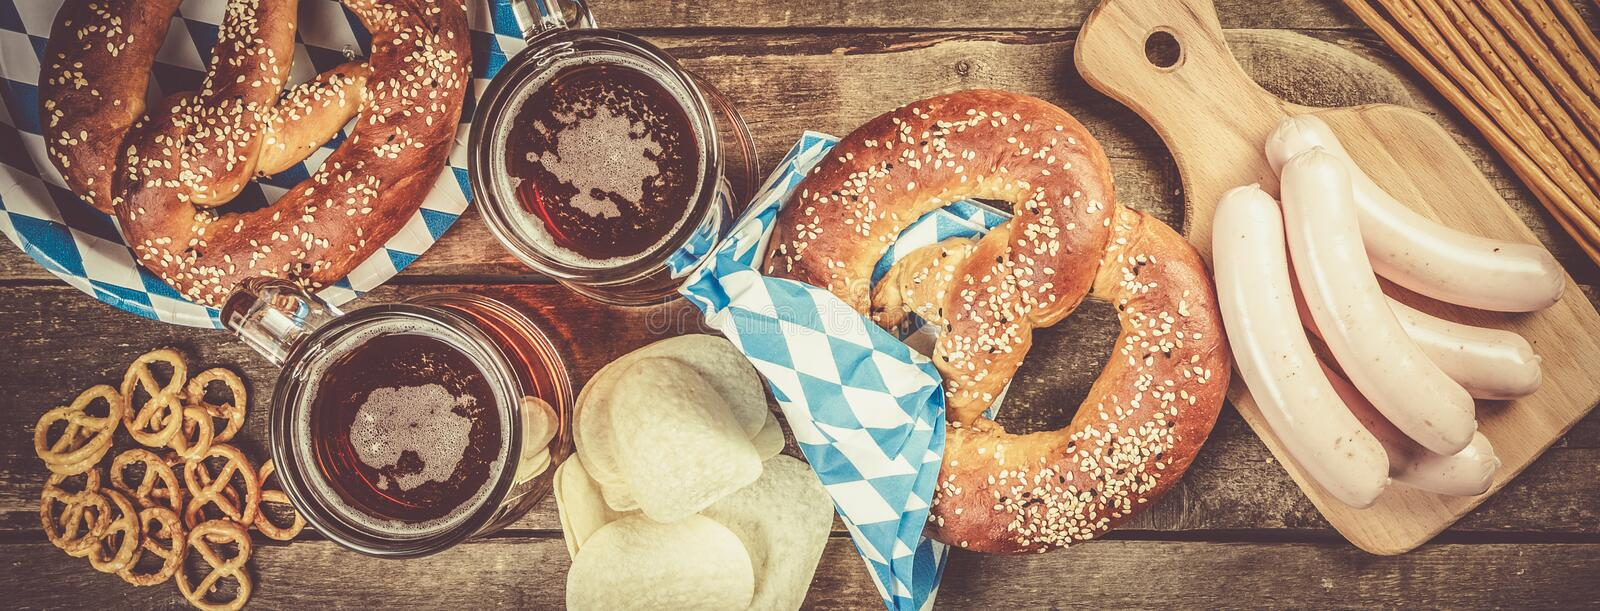 Oktoberfest concept - traditional food and beer on rustic background stock image